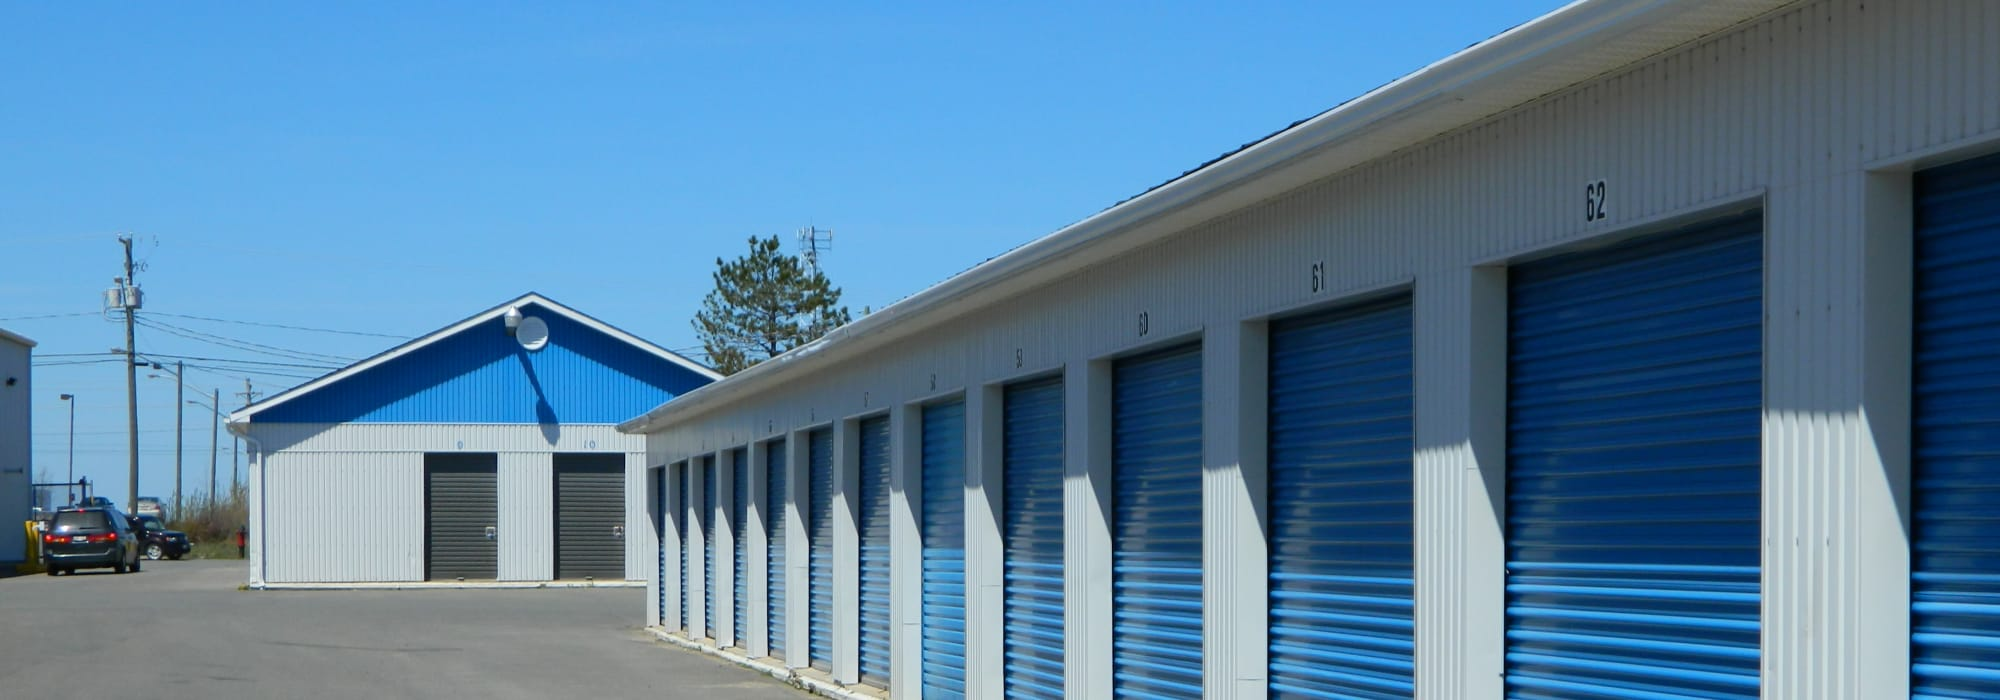 Exterior of Apple Self Storage - Fredericton in Fredericton, New Brunswick